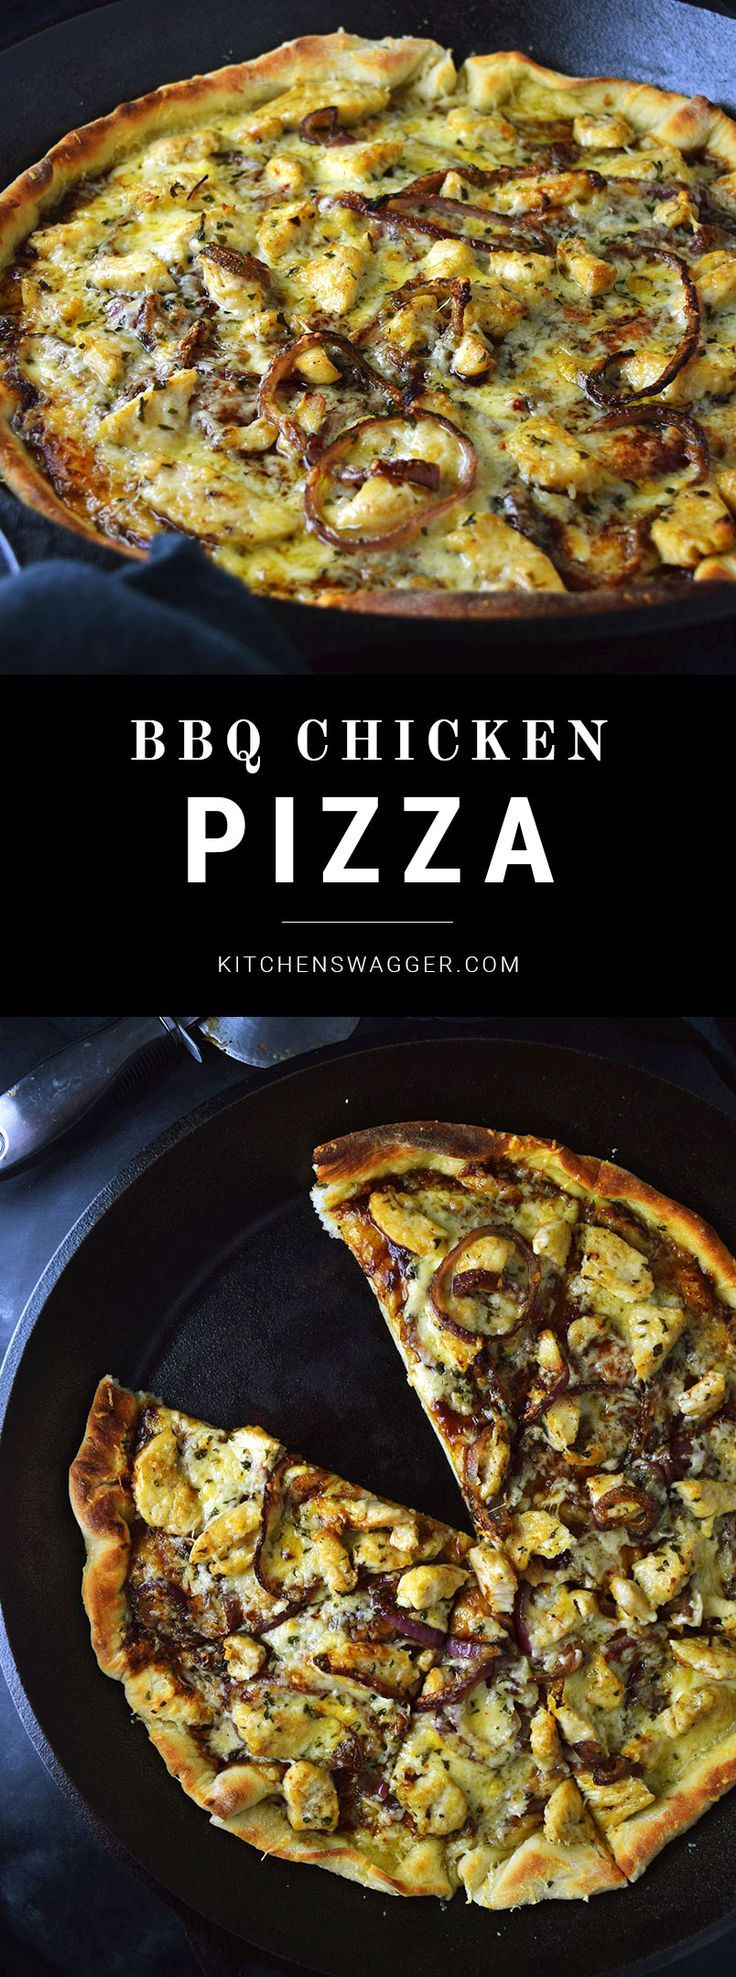 BBQ chicken pizza made in a cast iron skillet.